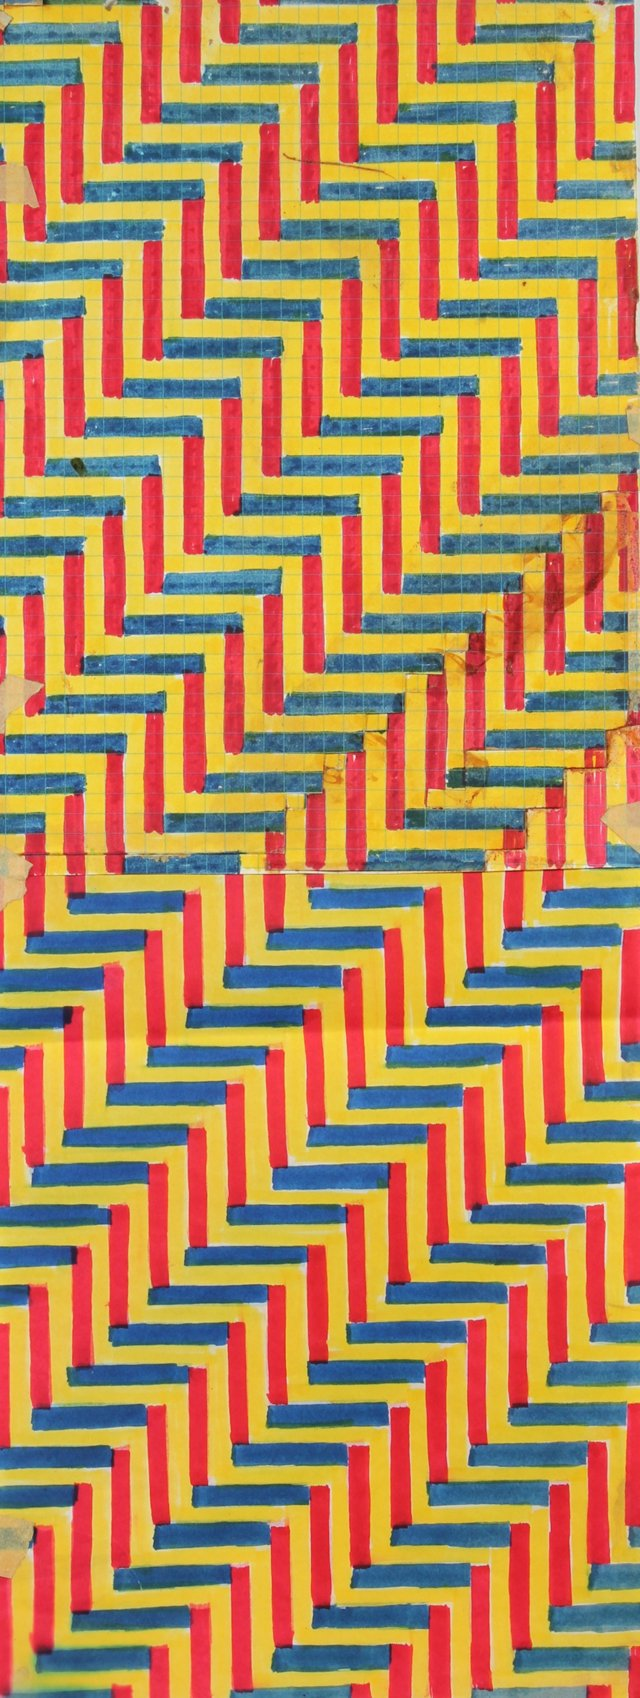 Midcentury Optical Abstract, Cassity